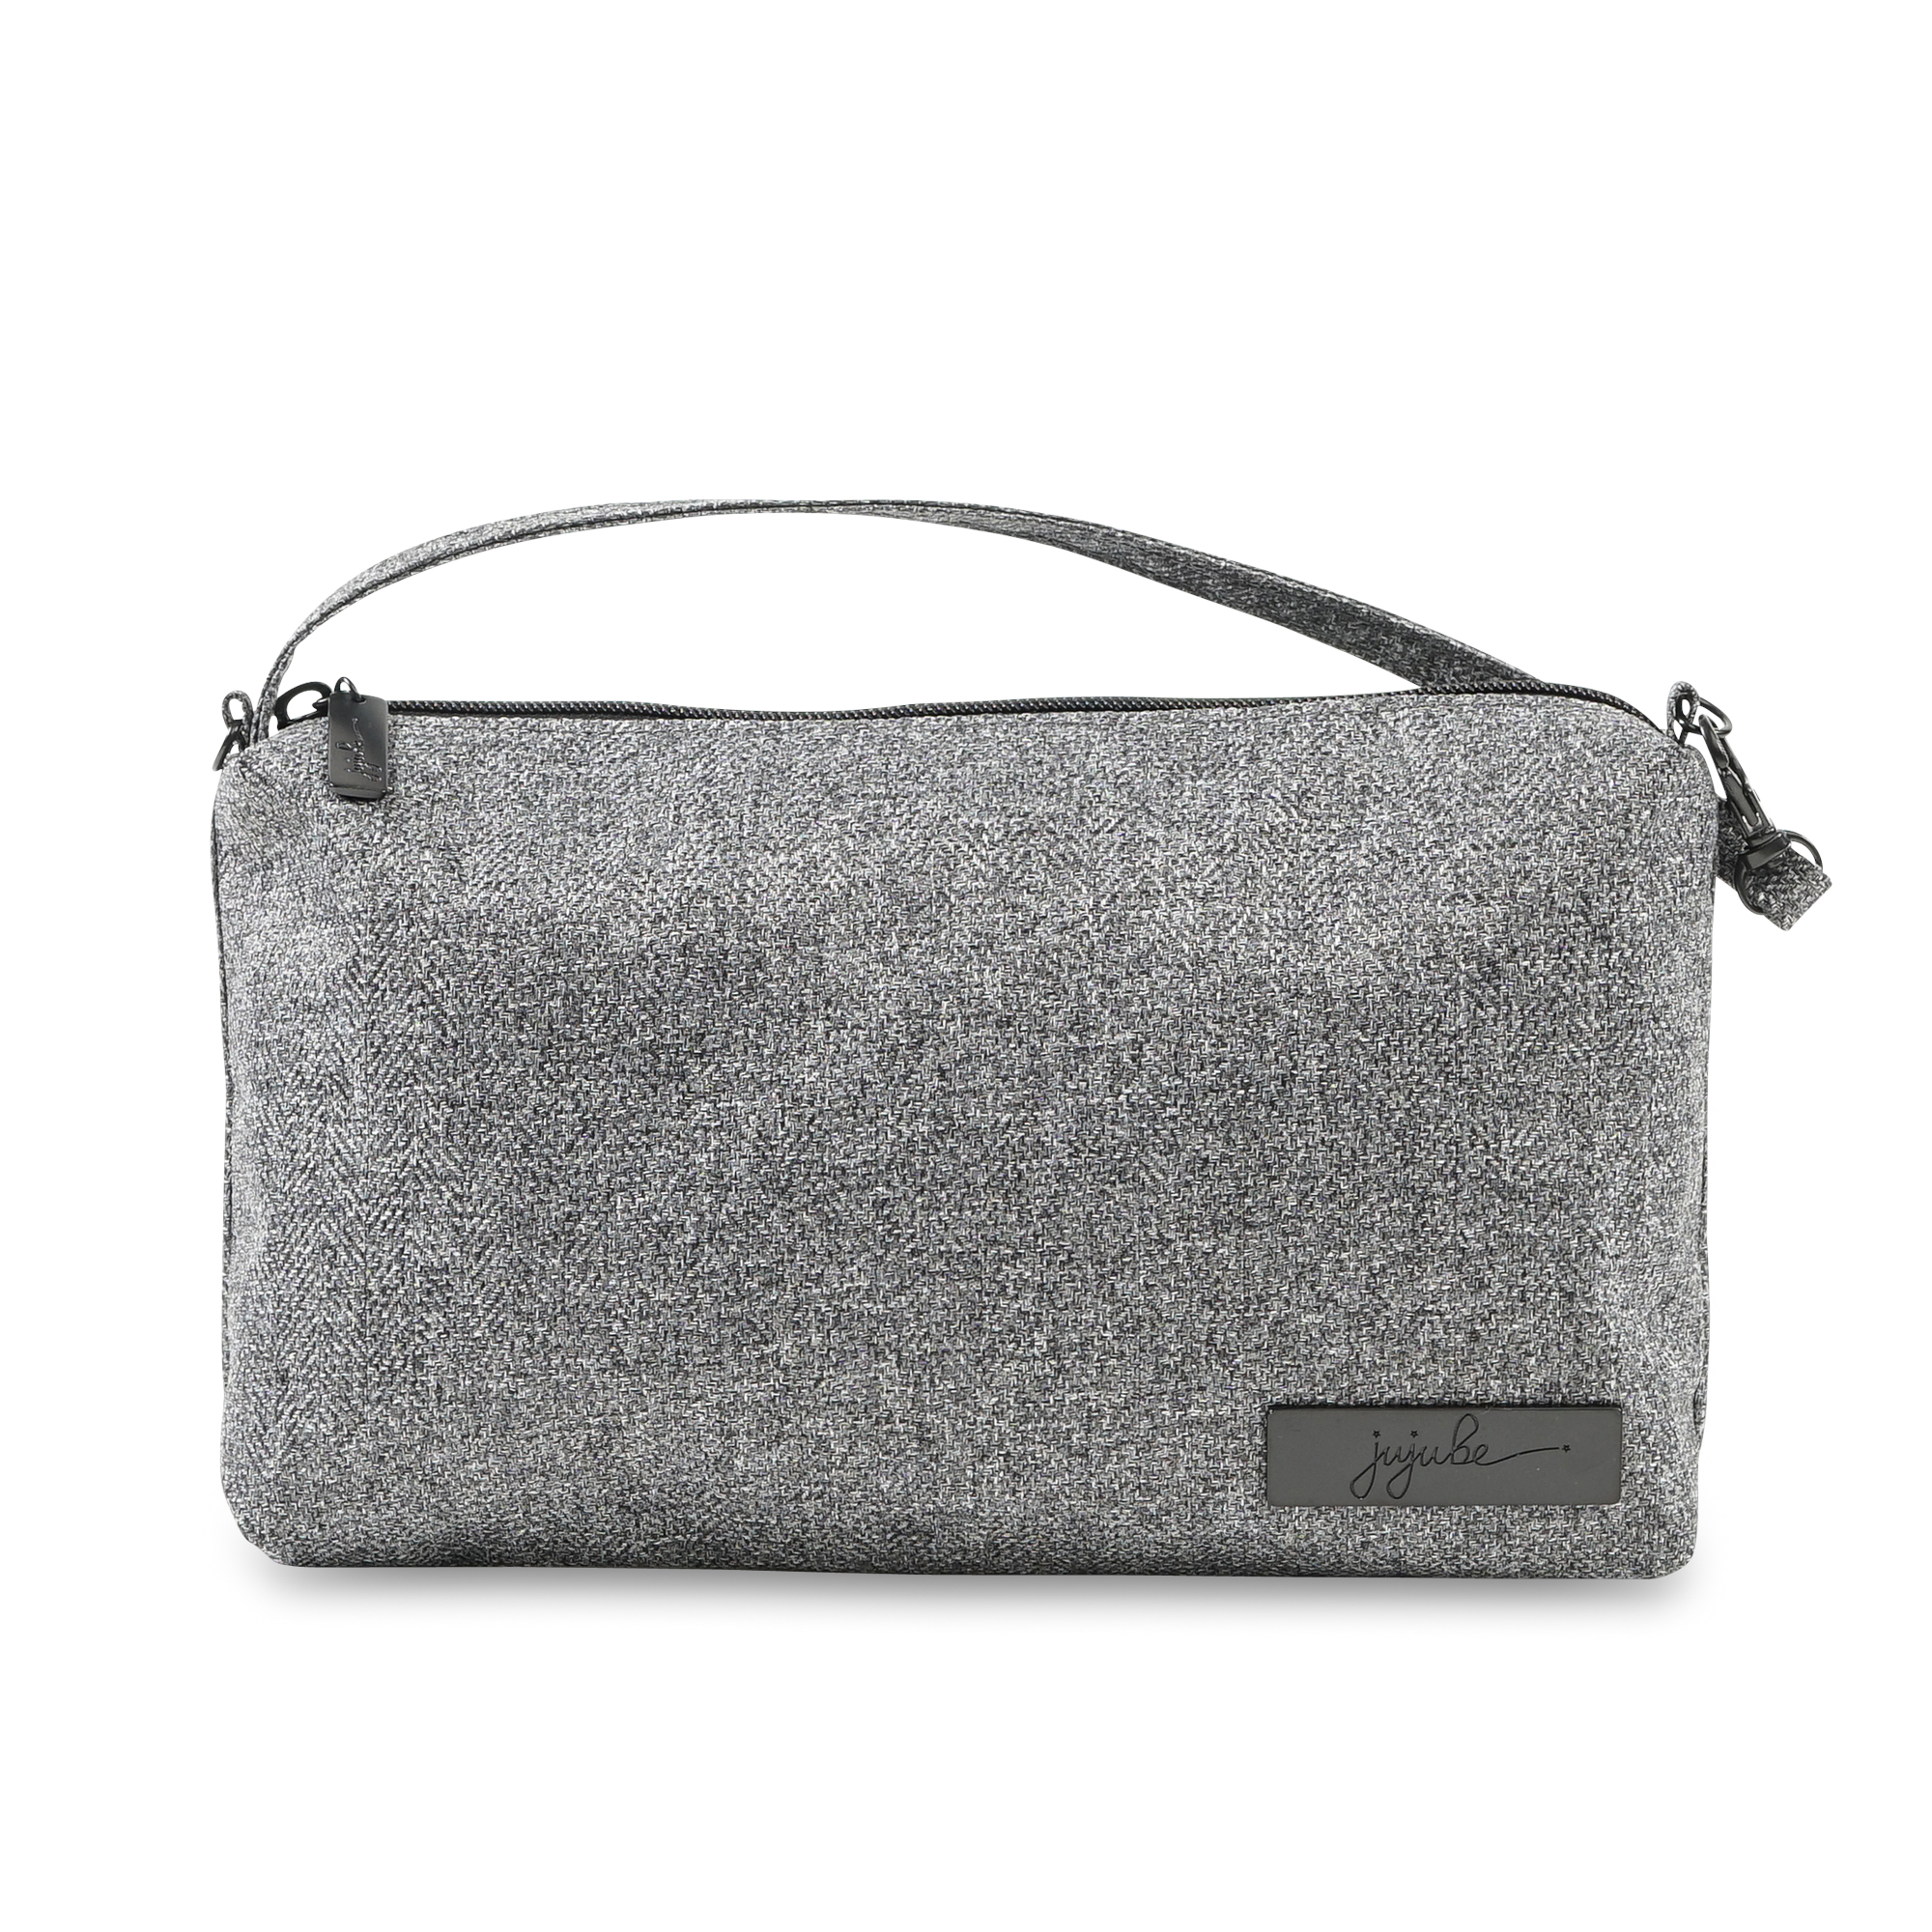 Jujube Be Quick Wristlet in Gray Matter